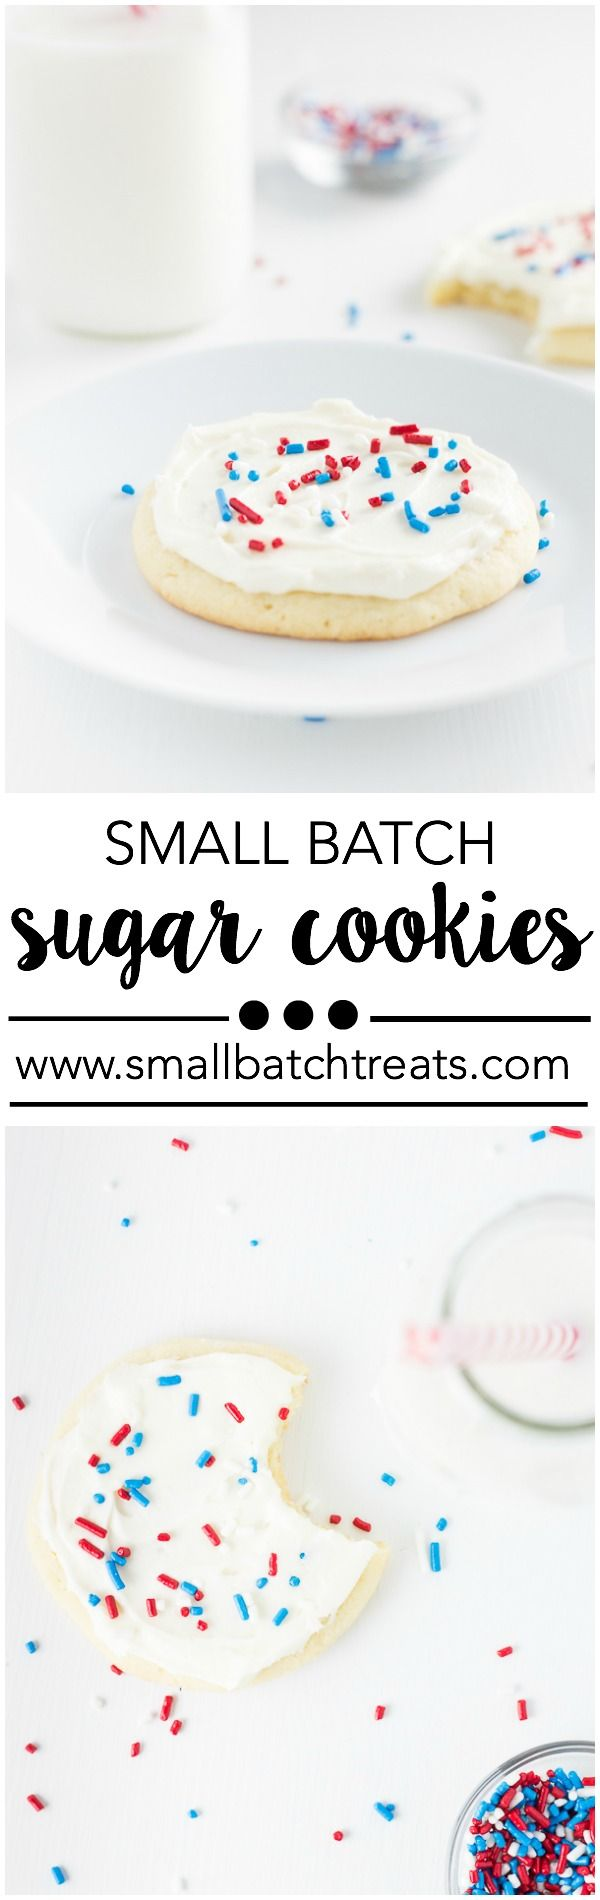 Small Batch Sugar Cookies. Recipe makes just 6 cookies! www.smallbatchtreats.com